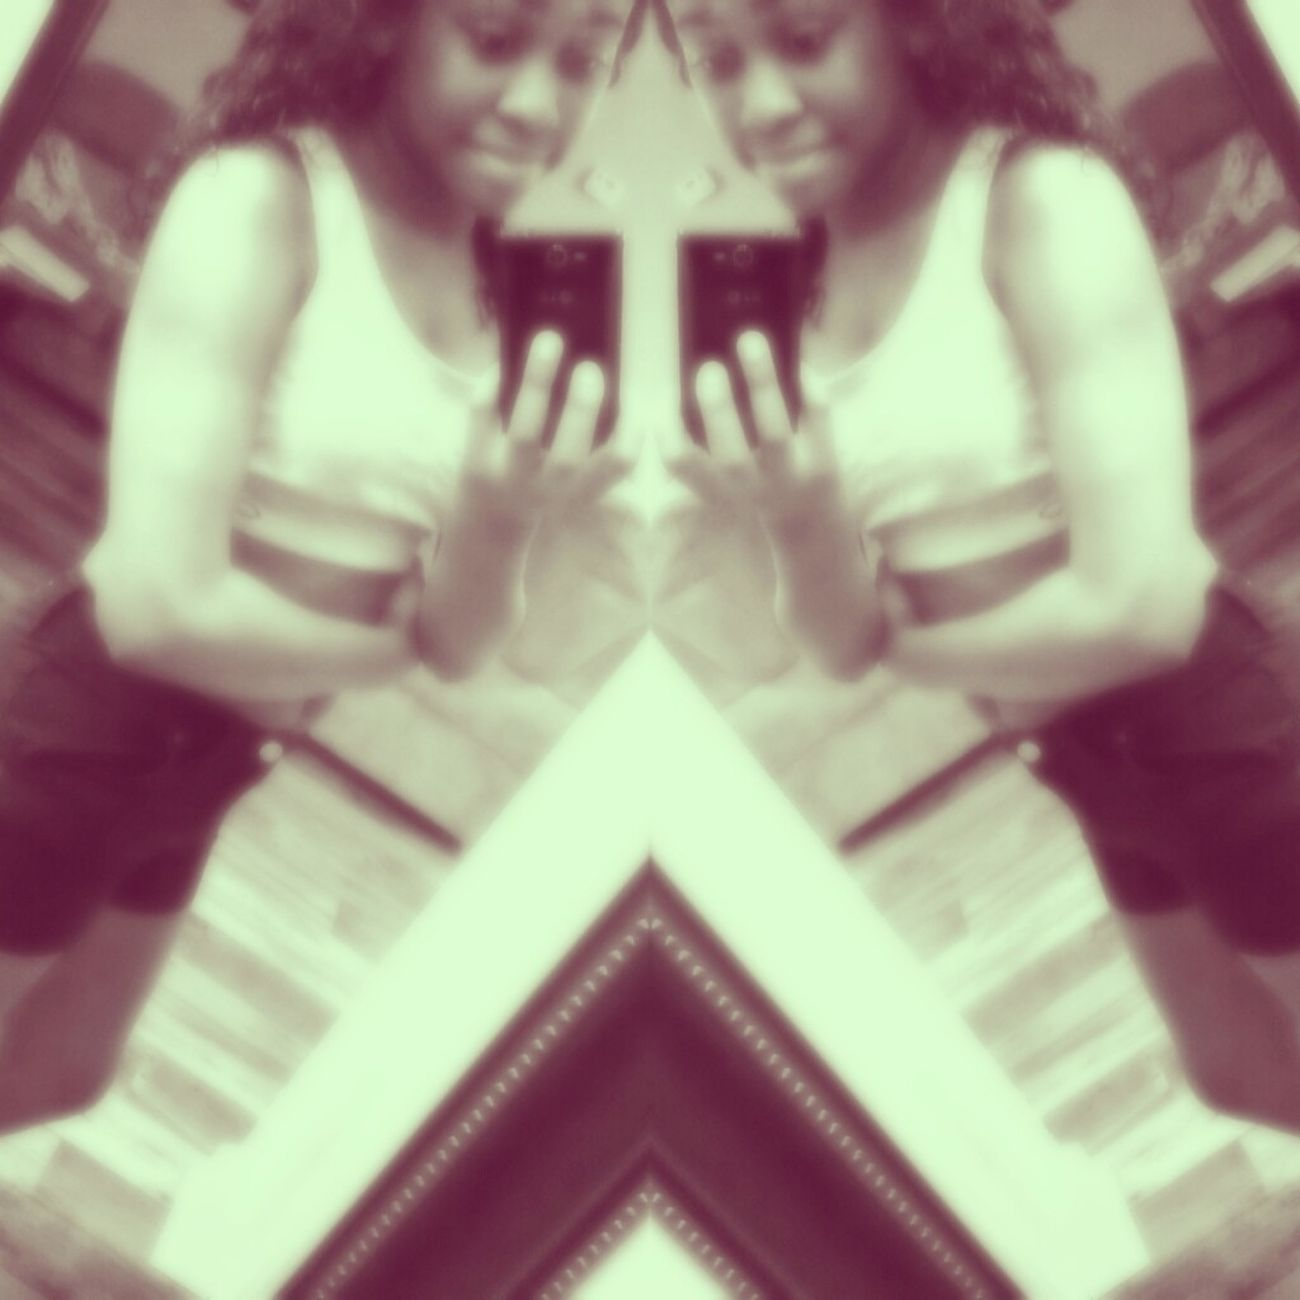 Cooote C;